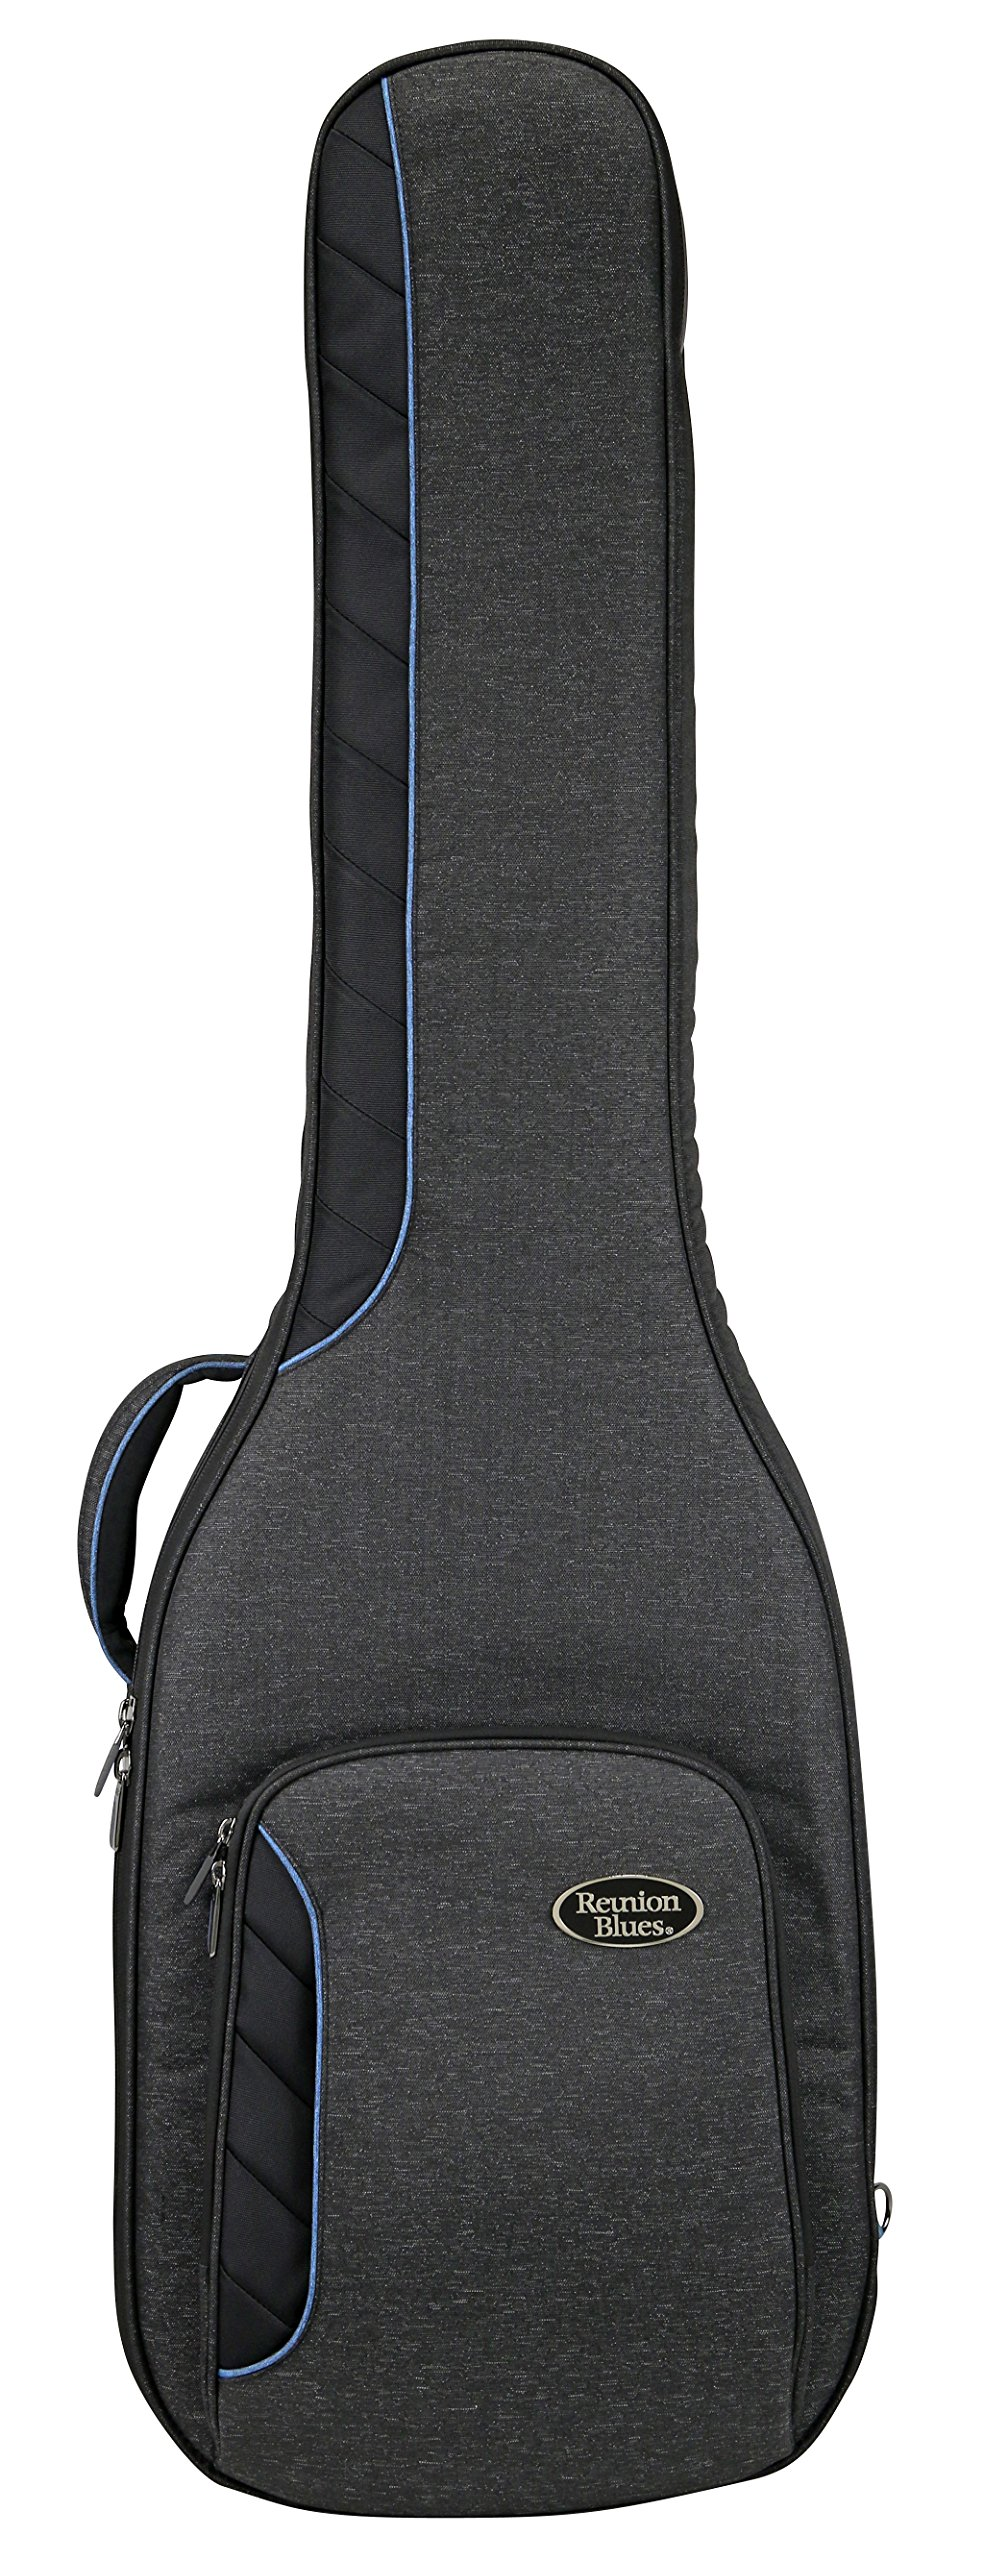 62c6f9f41f Reunion Blues RBCB4 RB Continental Voyager Electric Bass Guitar Case  product image